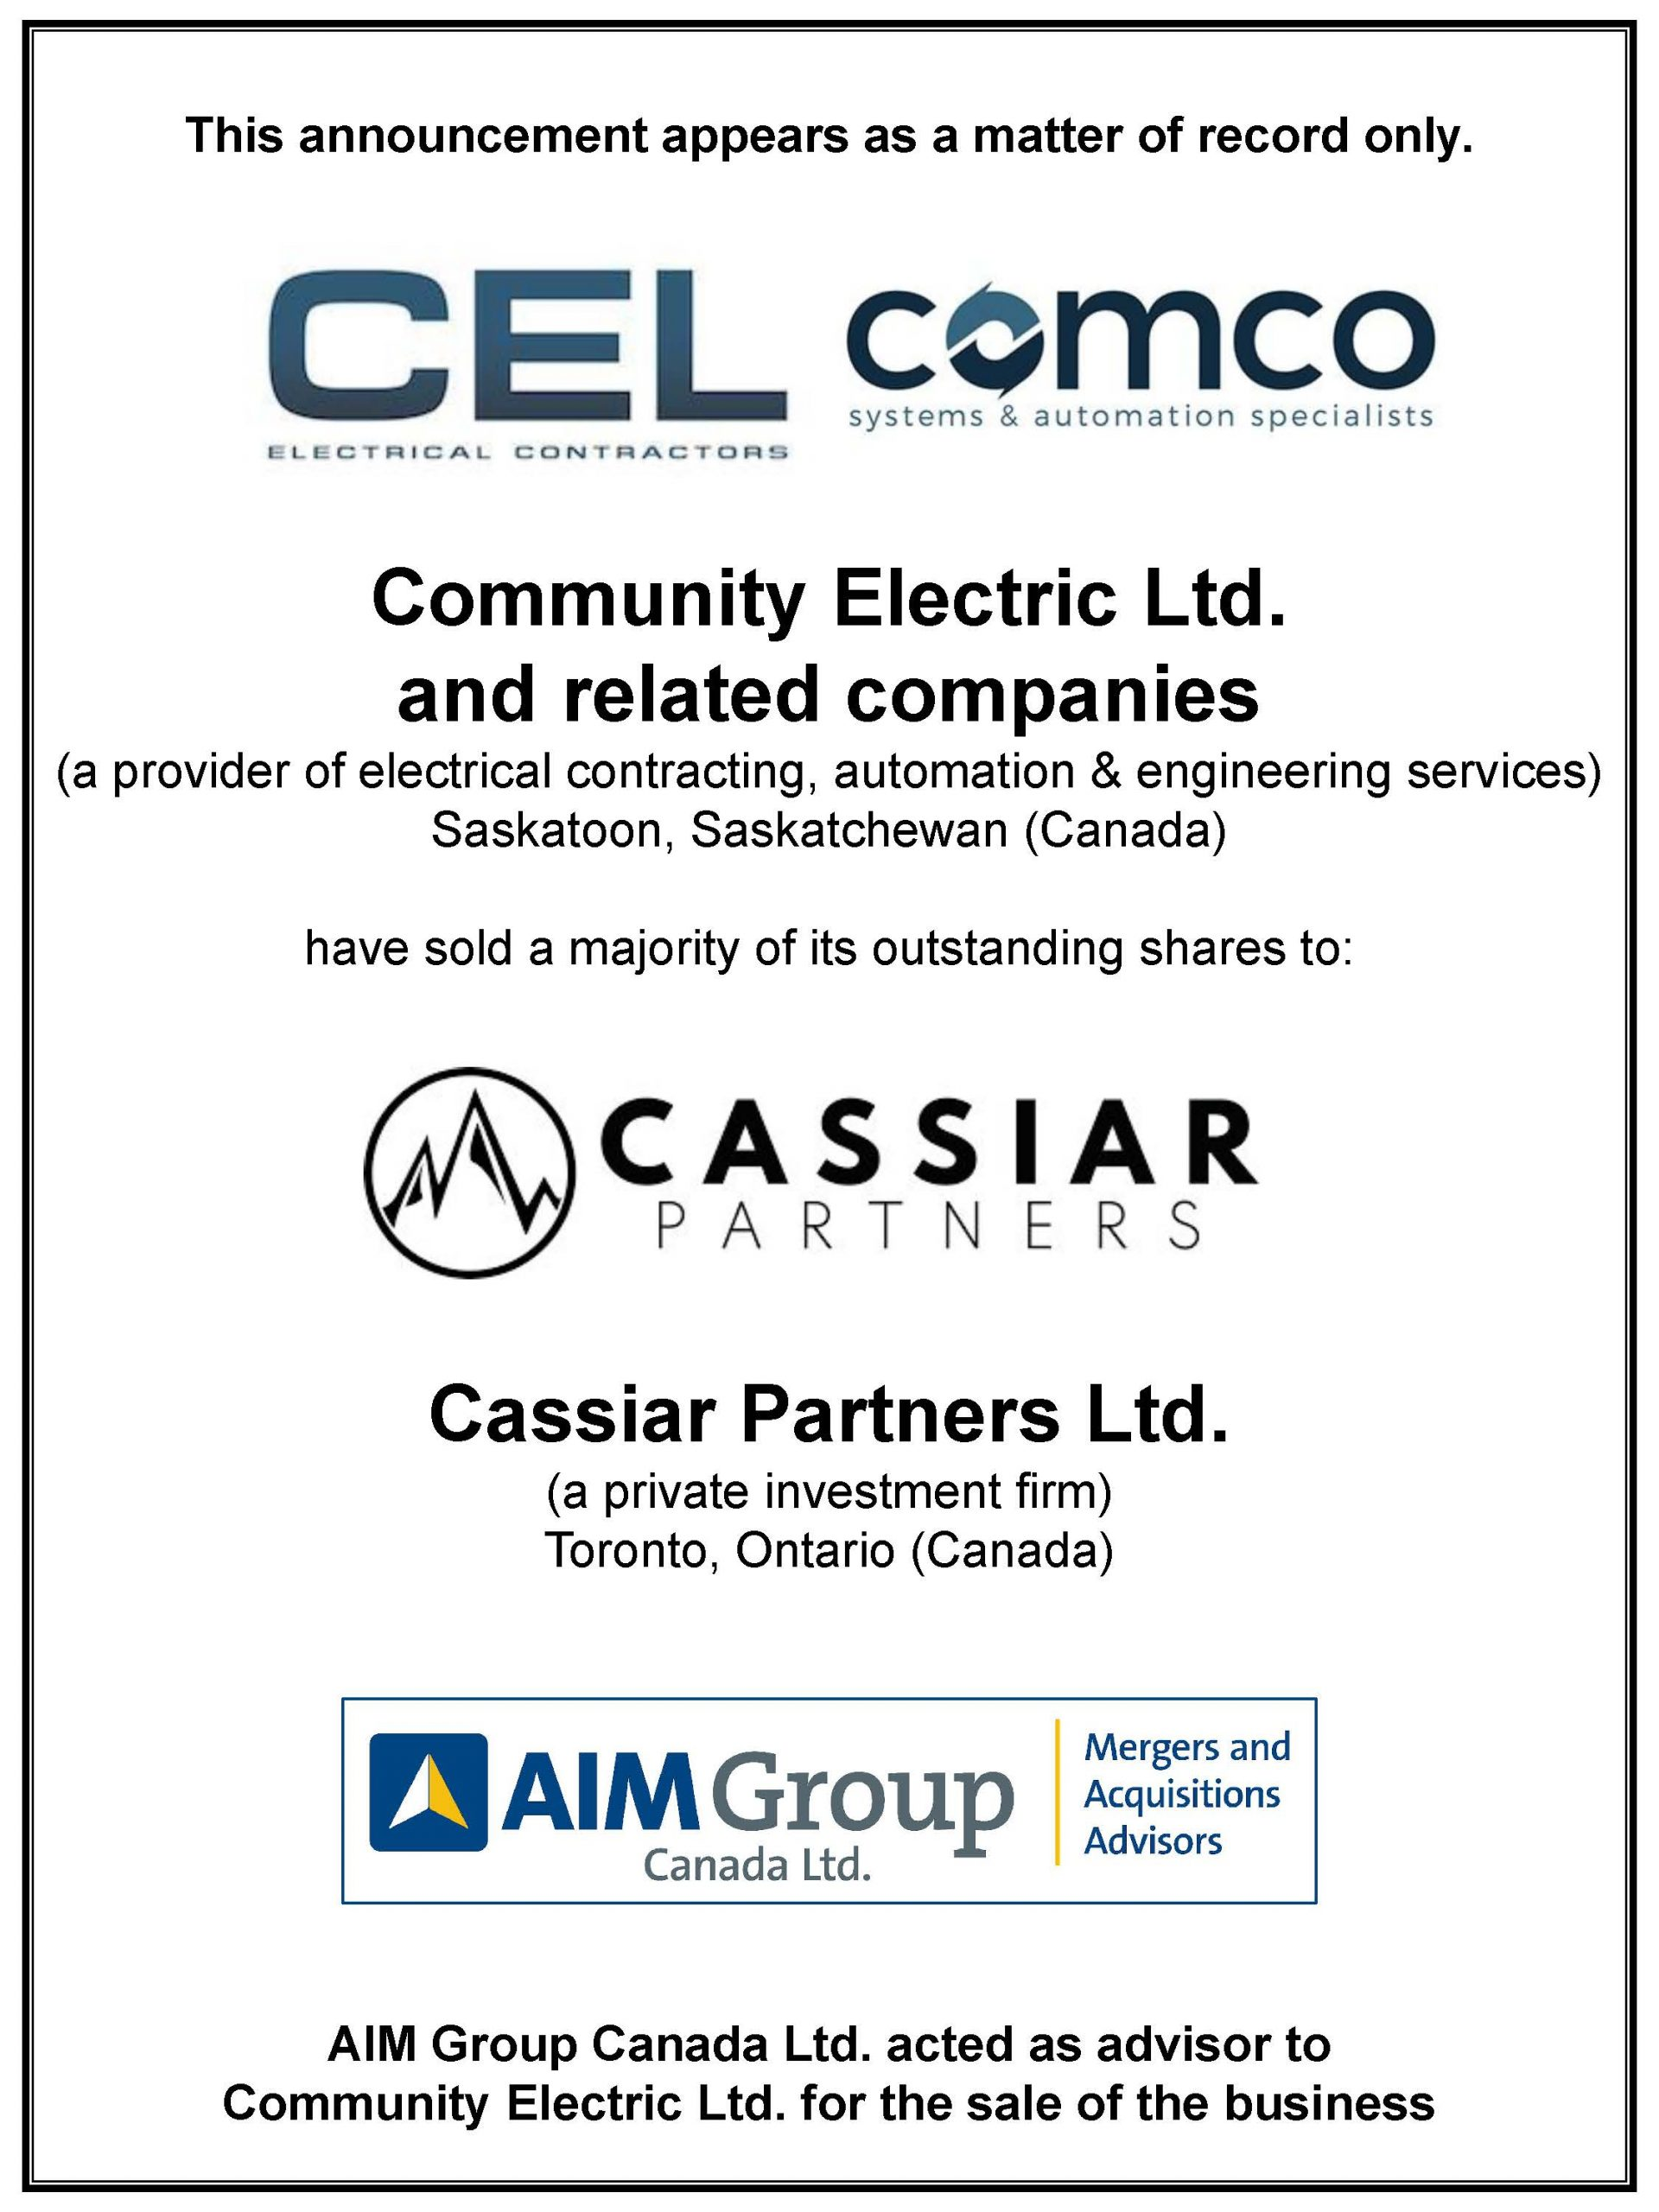 Community Electric Ltd. and related companies